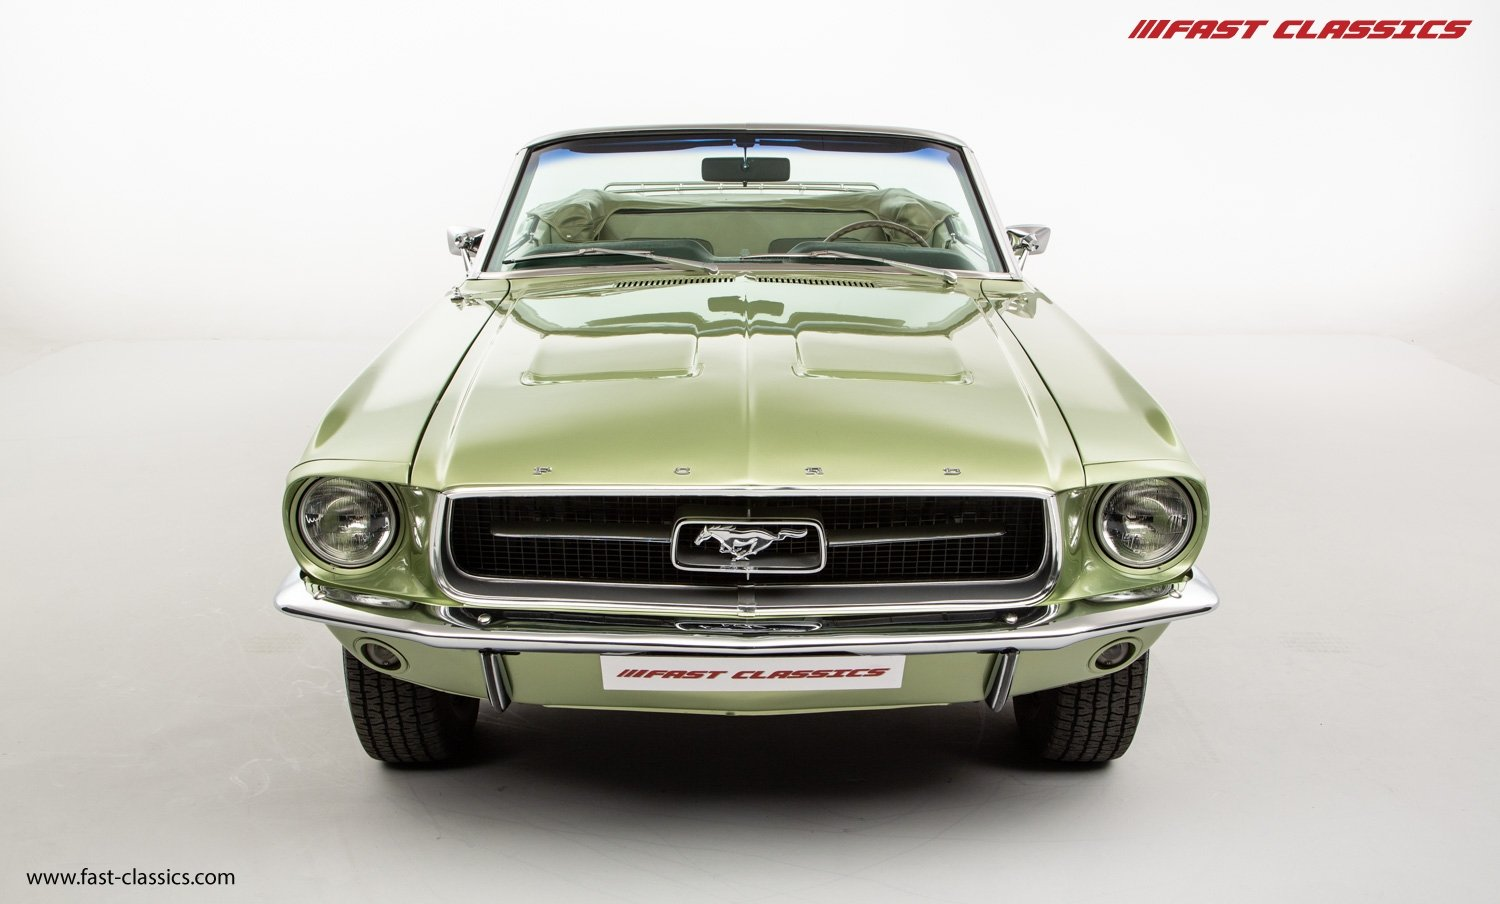 FORD MUSTANG CONVERTIBLE // 1967 FACTORY 4-SPEED MANUAL For Sale (picture 4 of 23)